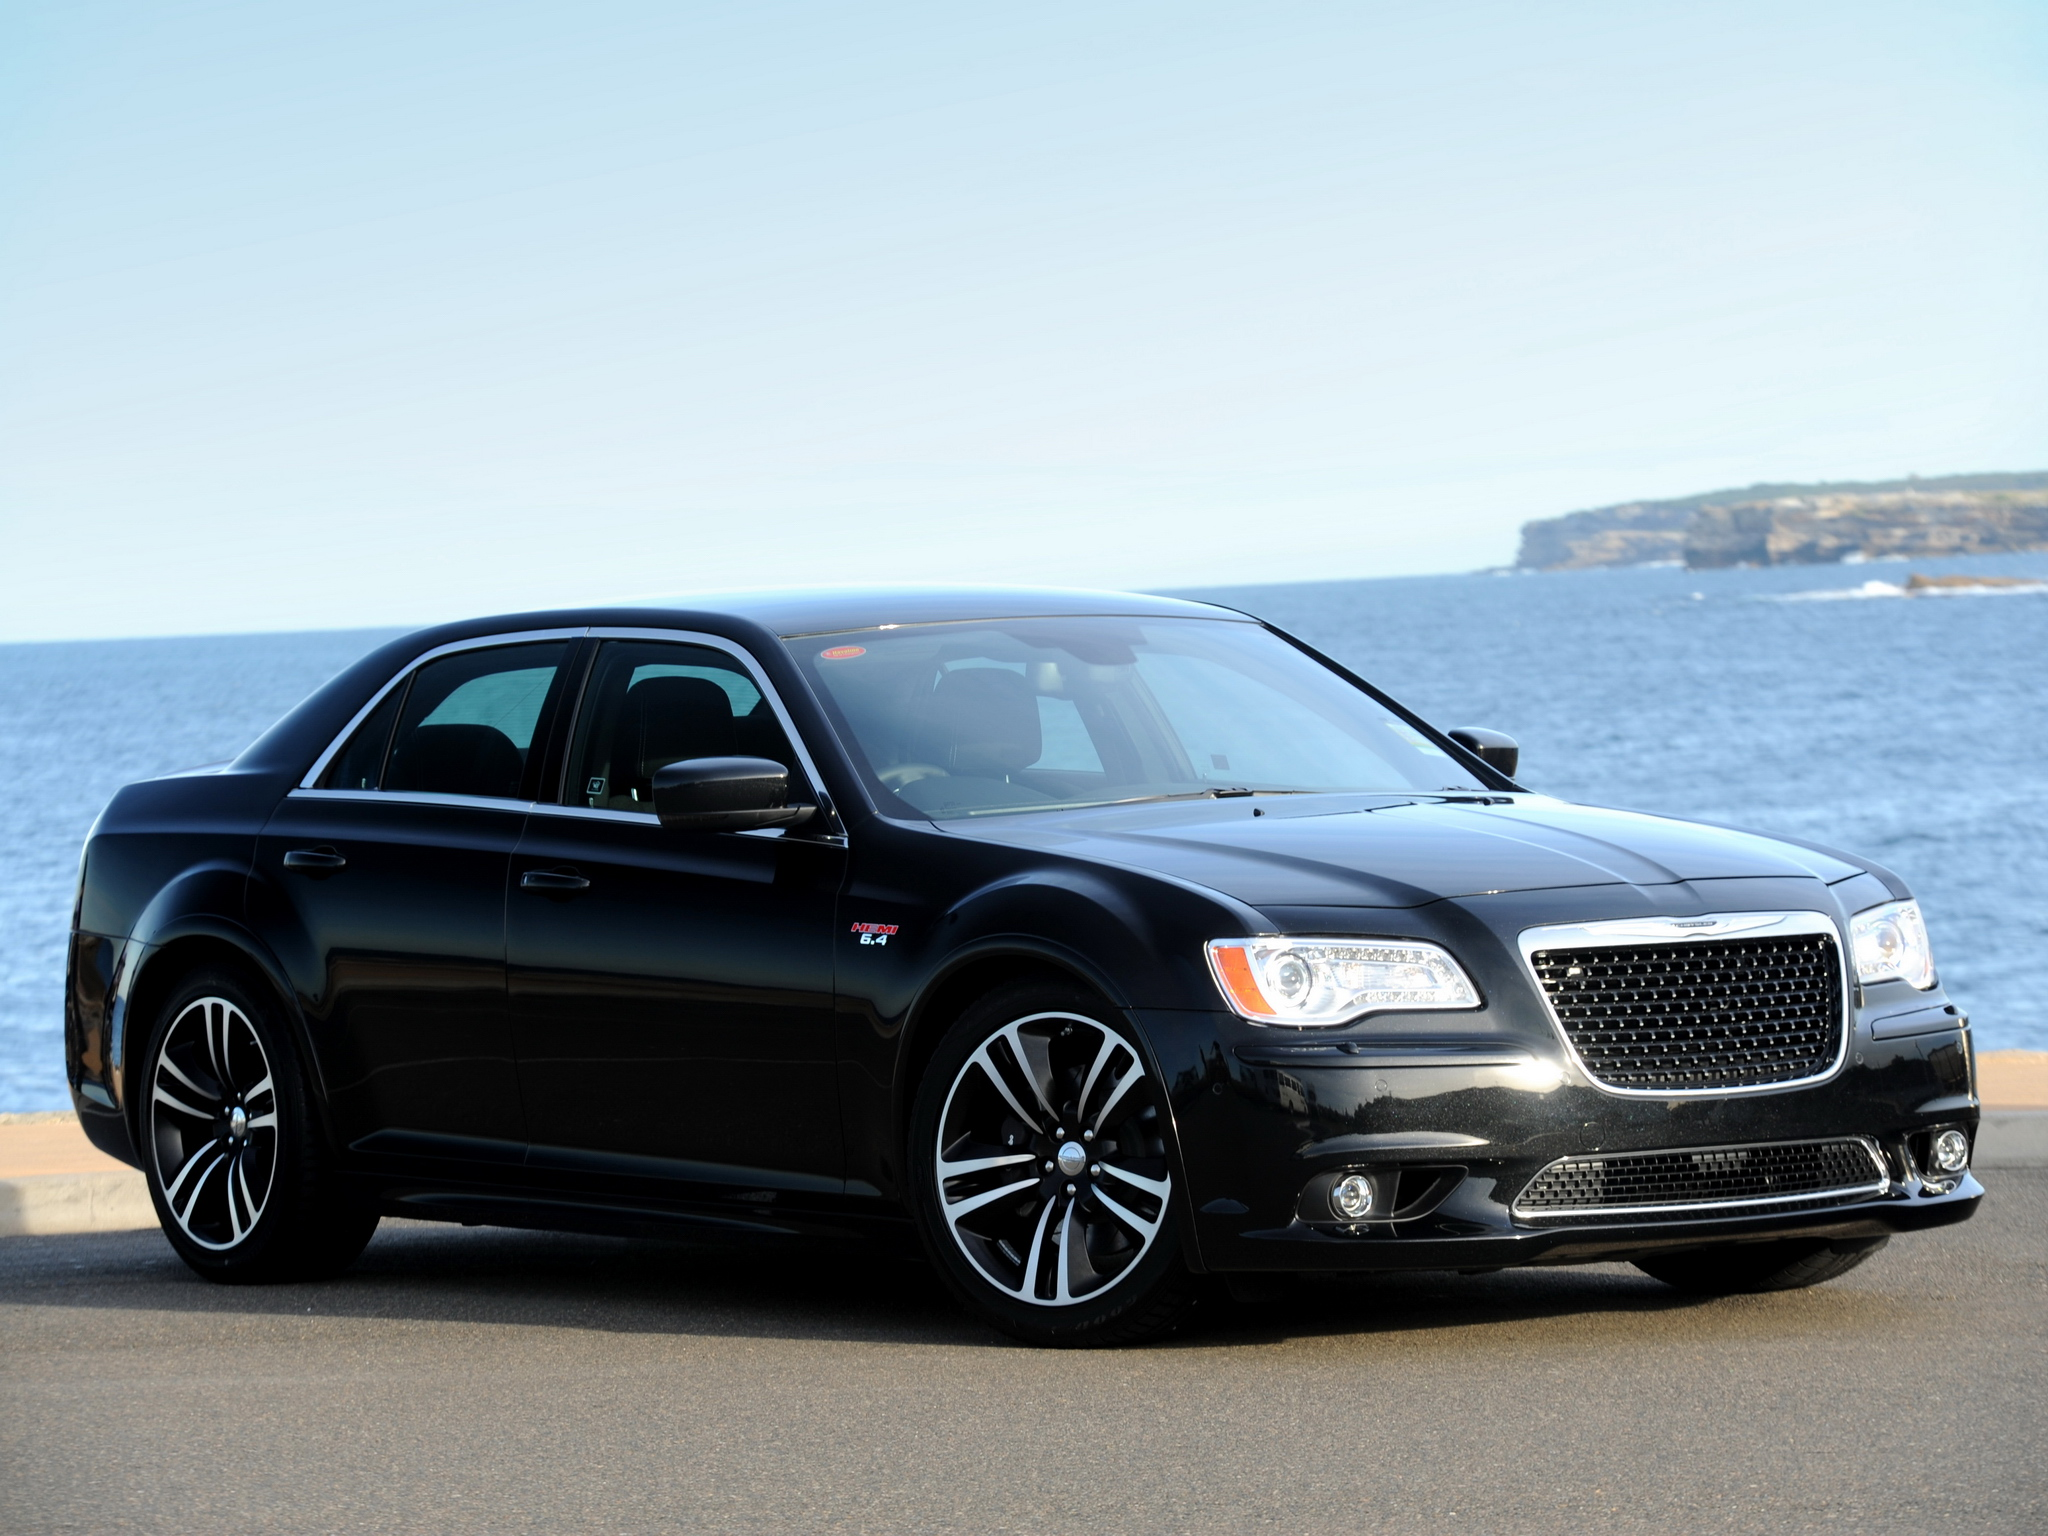 chrysler 300c srt 8 photos photogallery with 13 pics. Black Bedroom Furniture Sets. Home Design Ideas